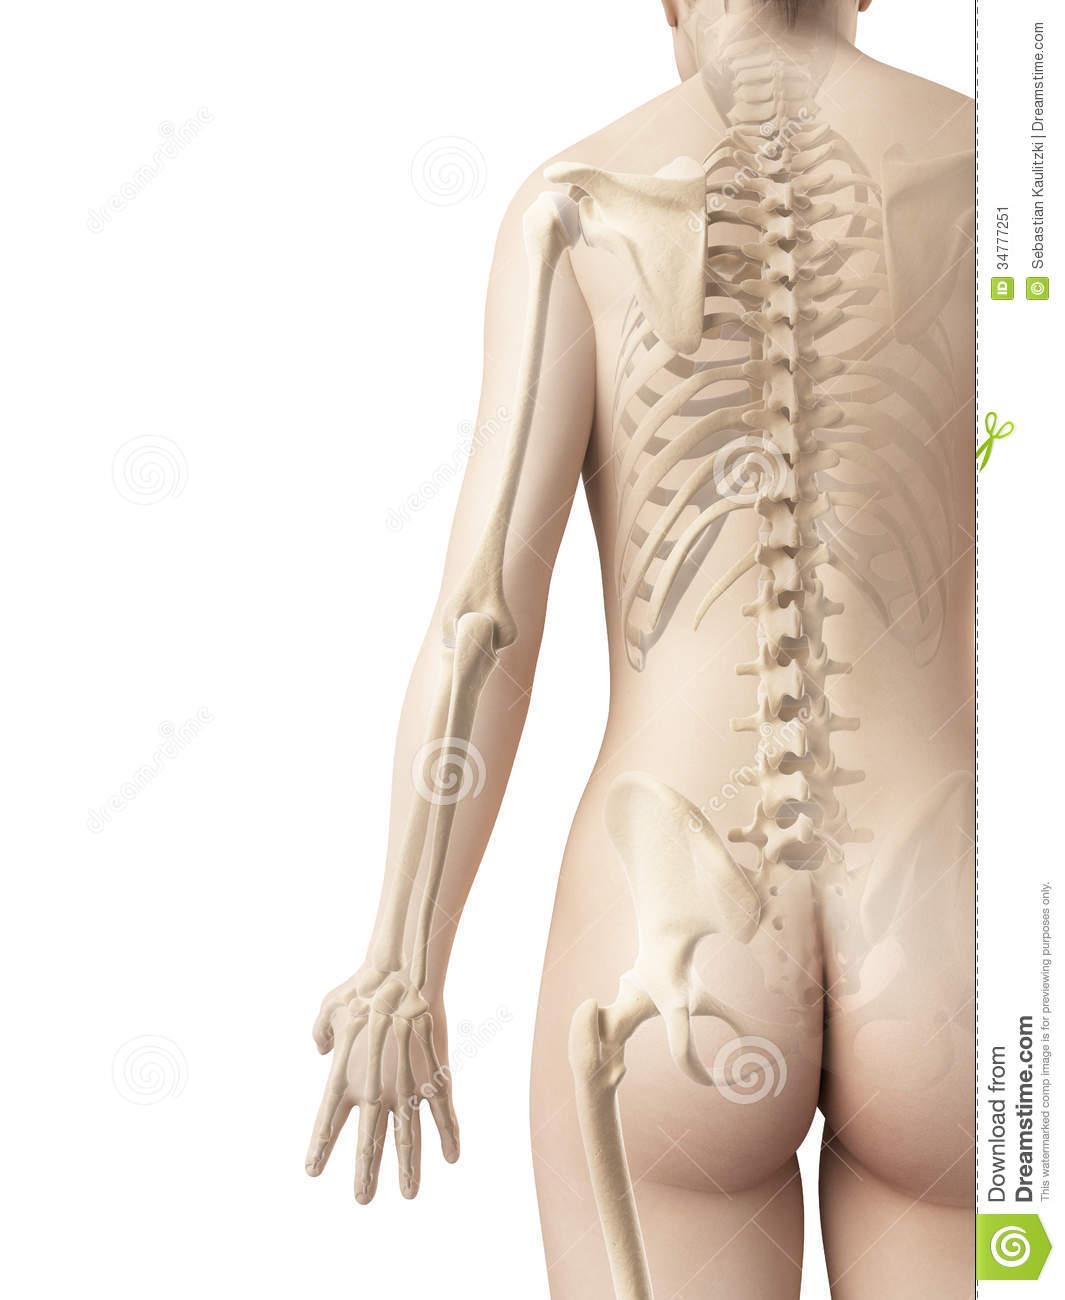 Bones Of The Arm Stock Illustration Illustration Of Ulna 34777251